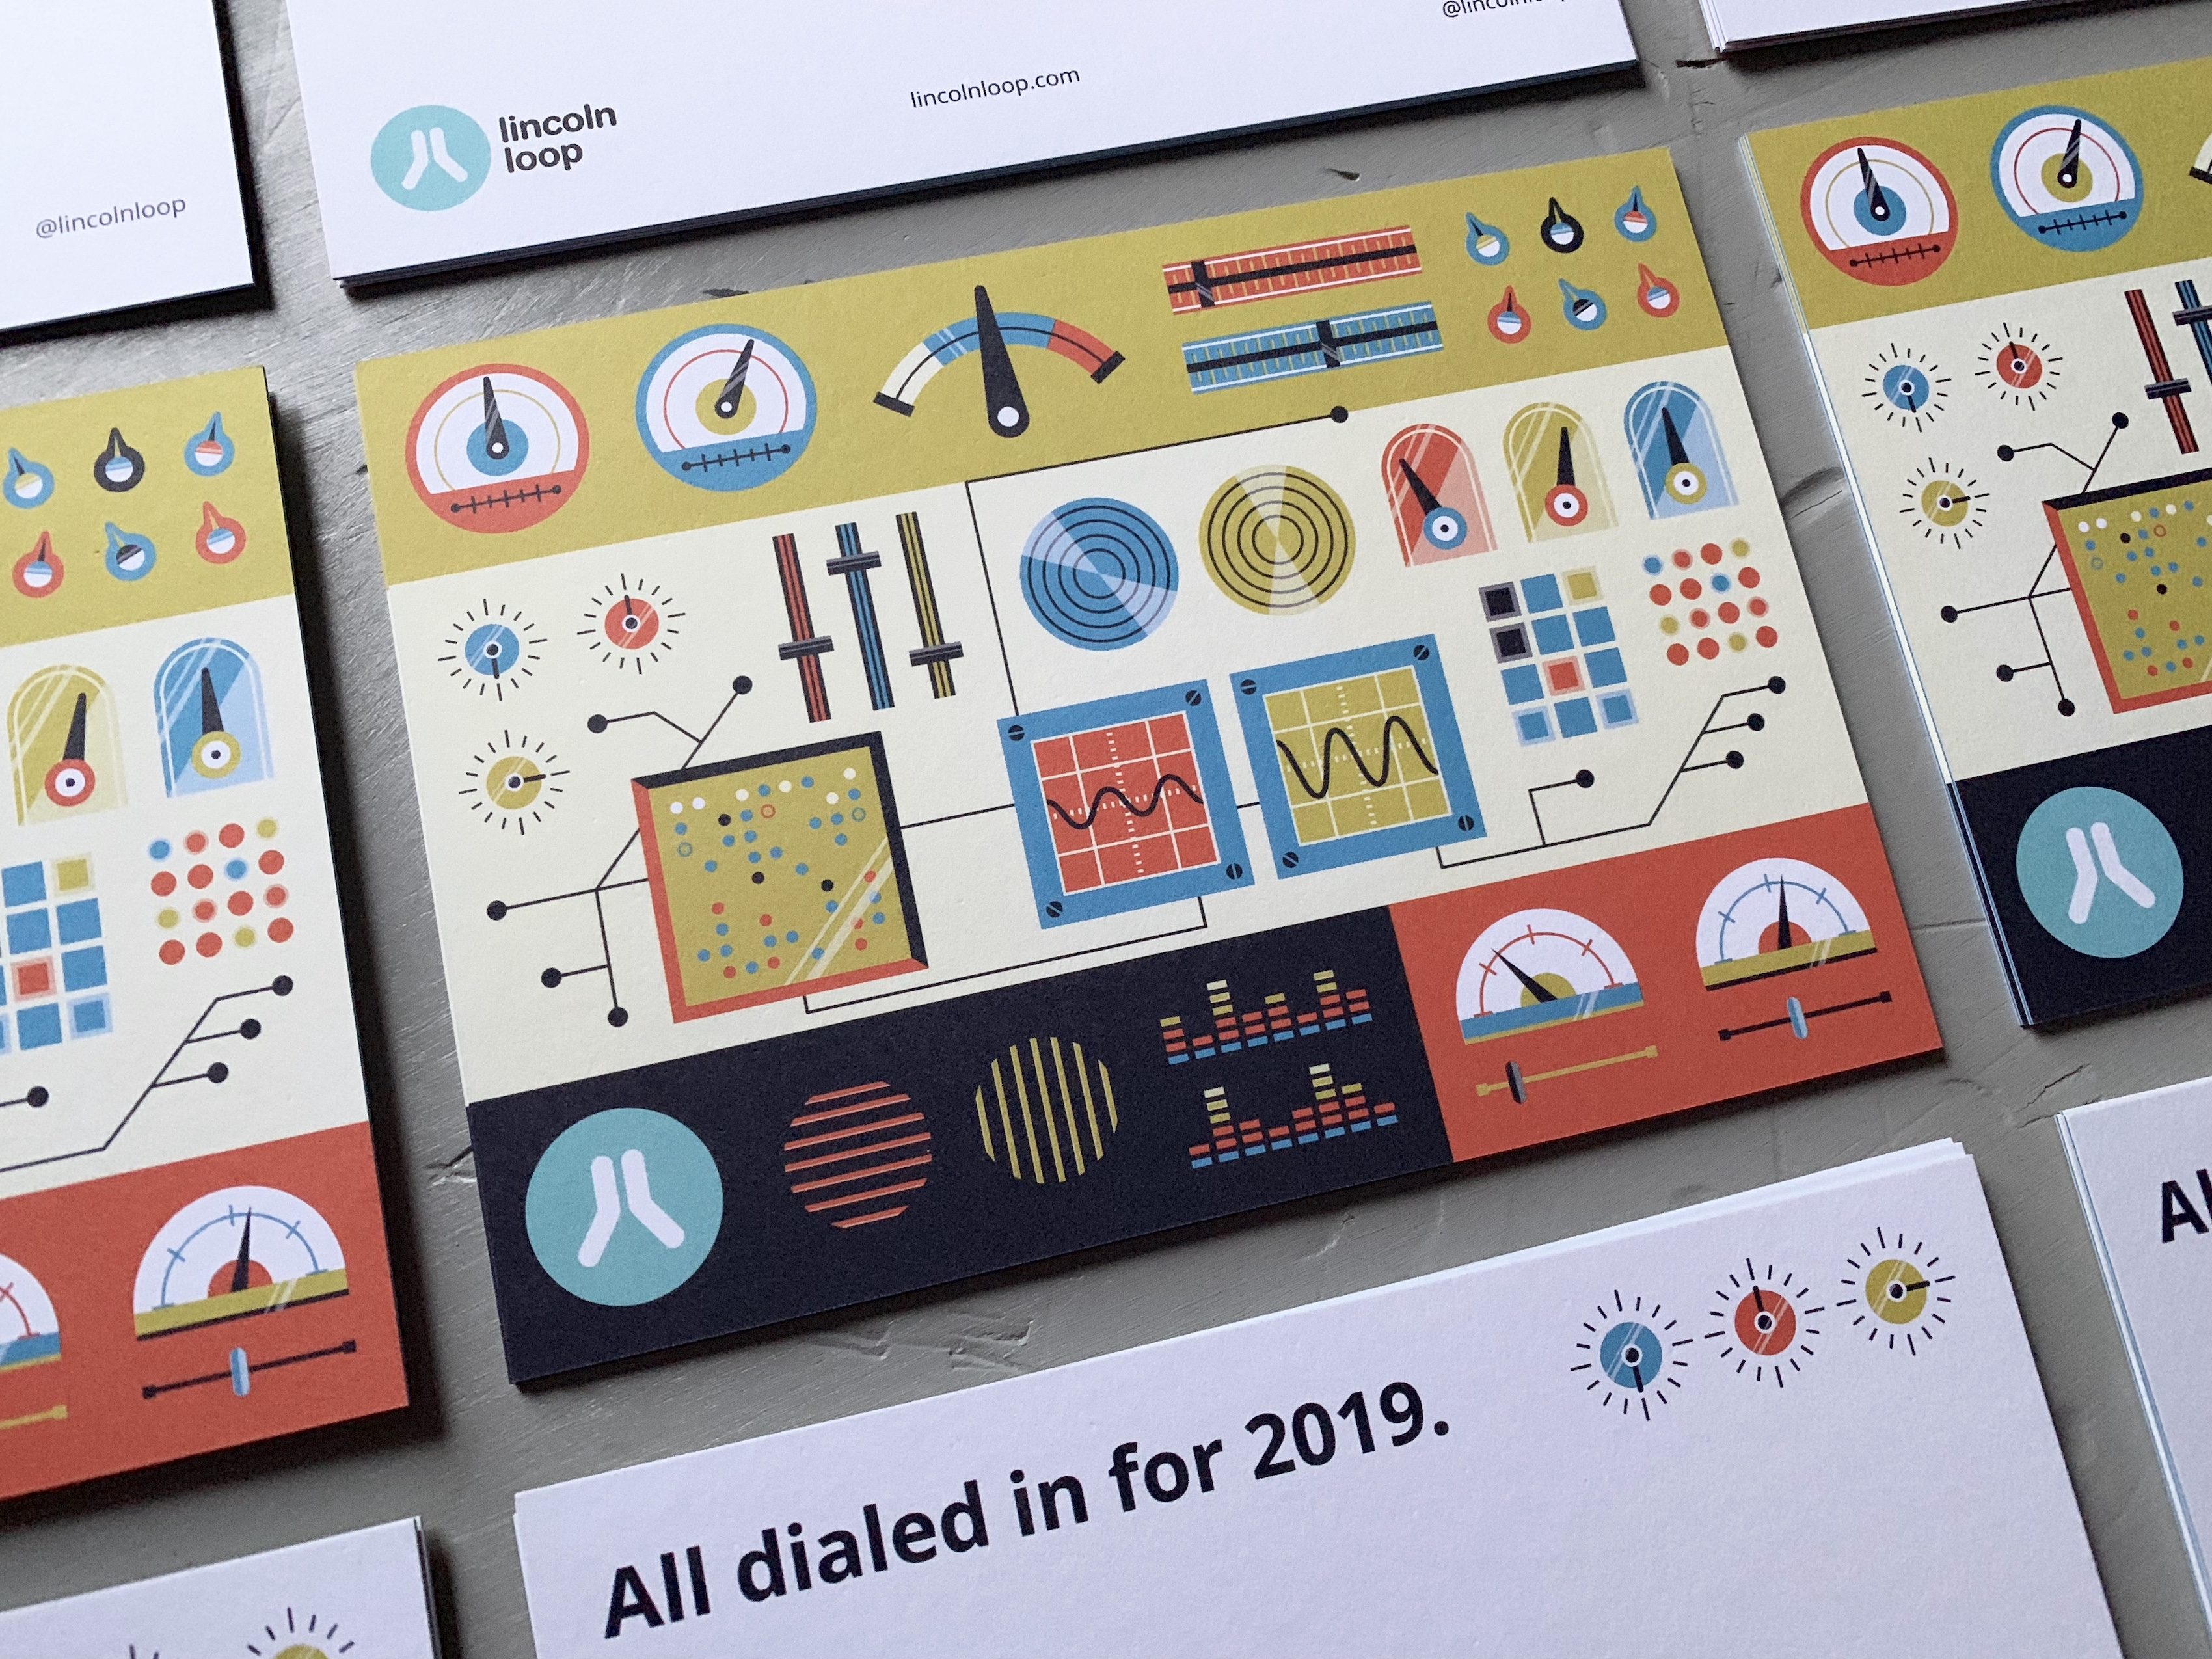 Illustration of many dials on a 2018 New Year's card